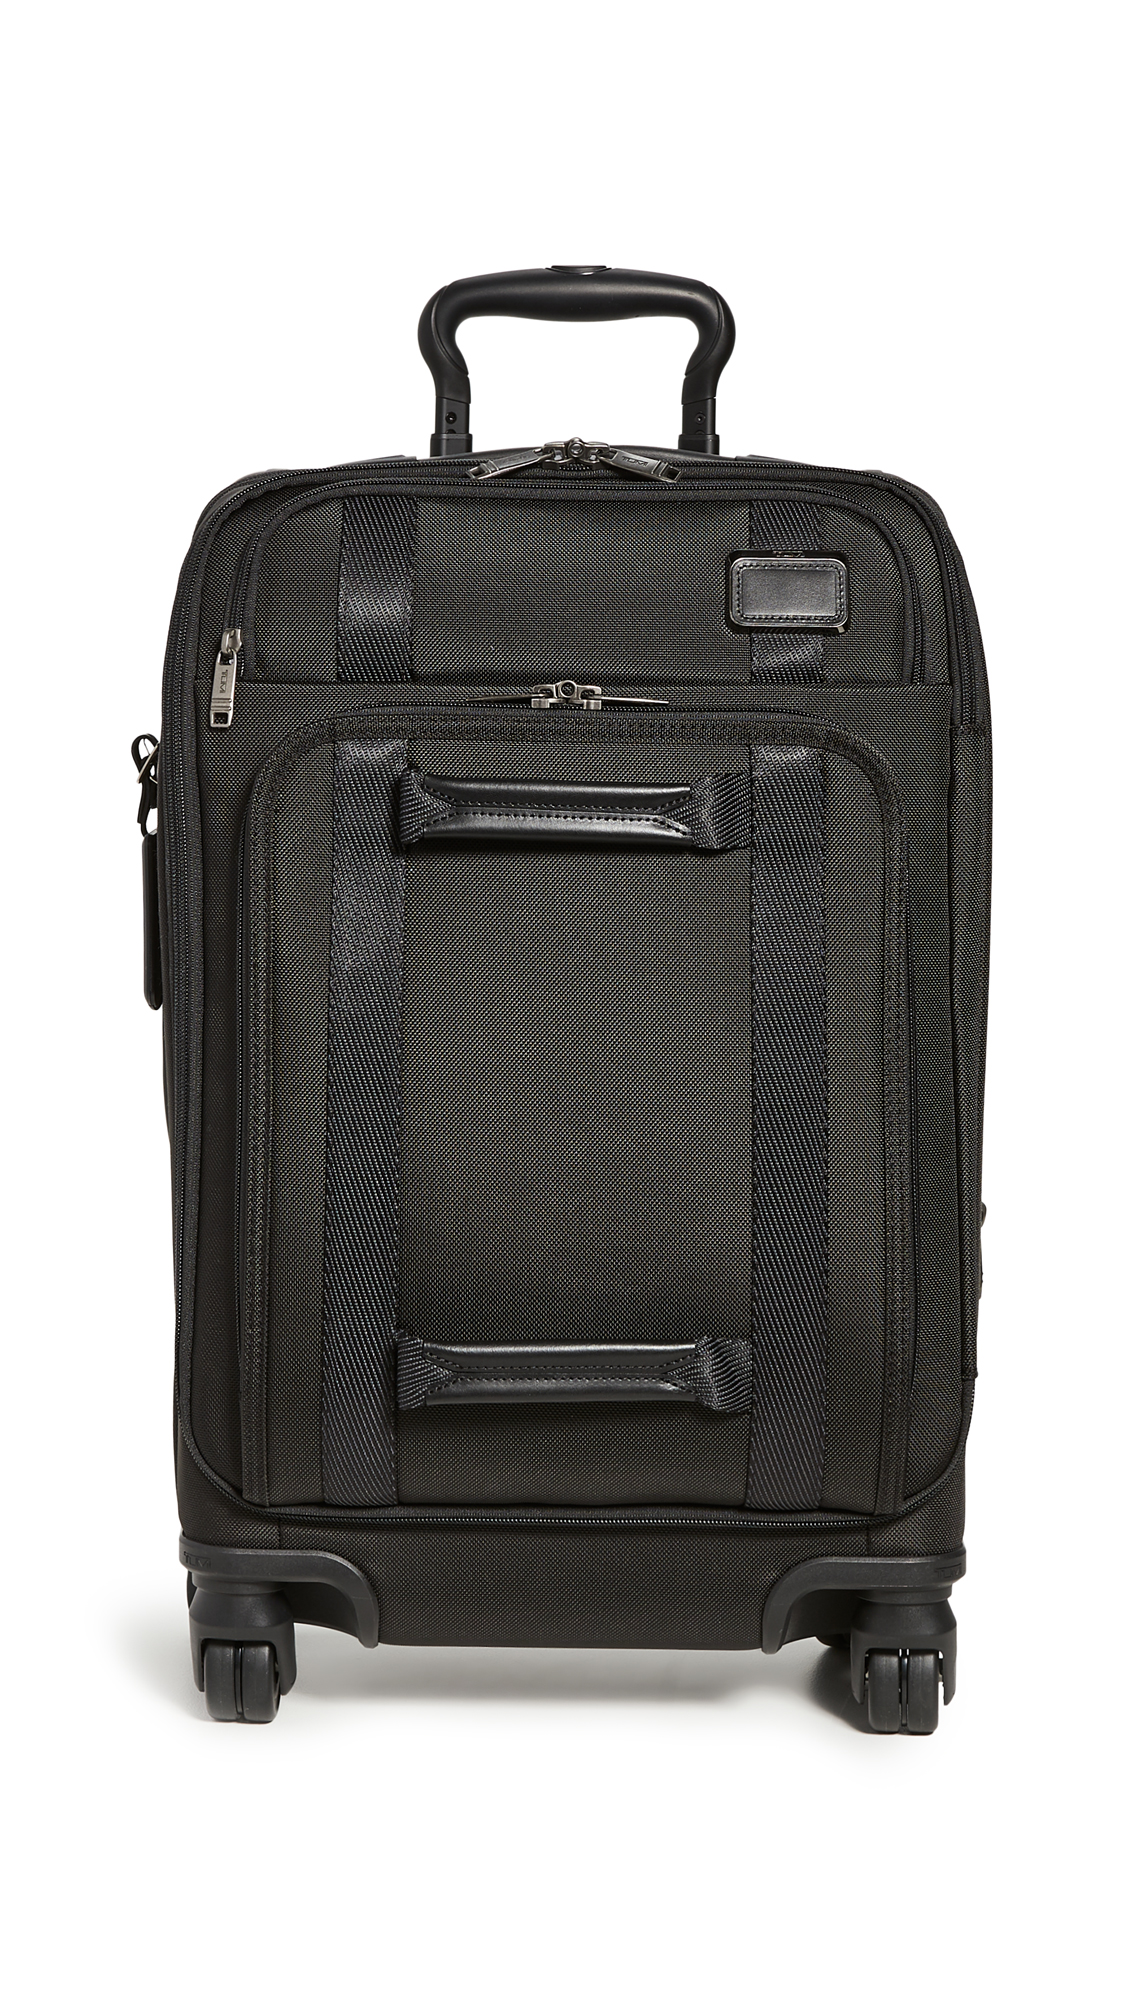 Tumi Merge Collection 22-inch International Expandable Wheeled Carry-on Bag In Grey/ Black Stripe